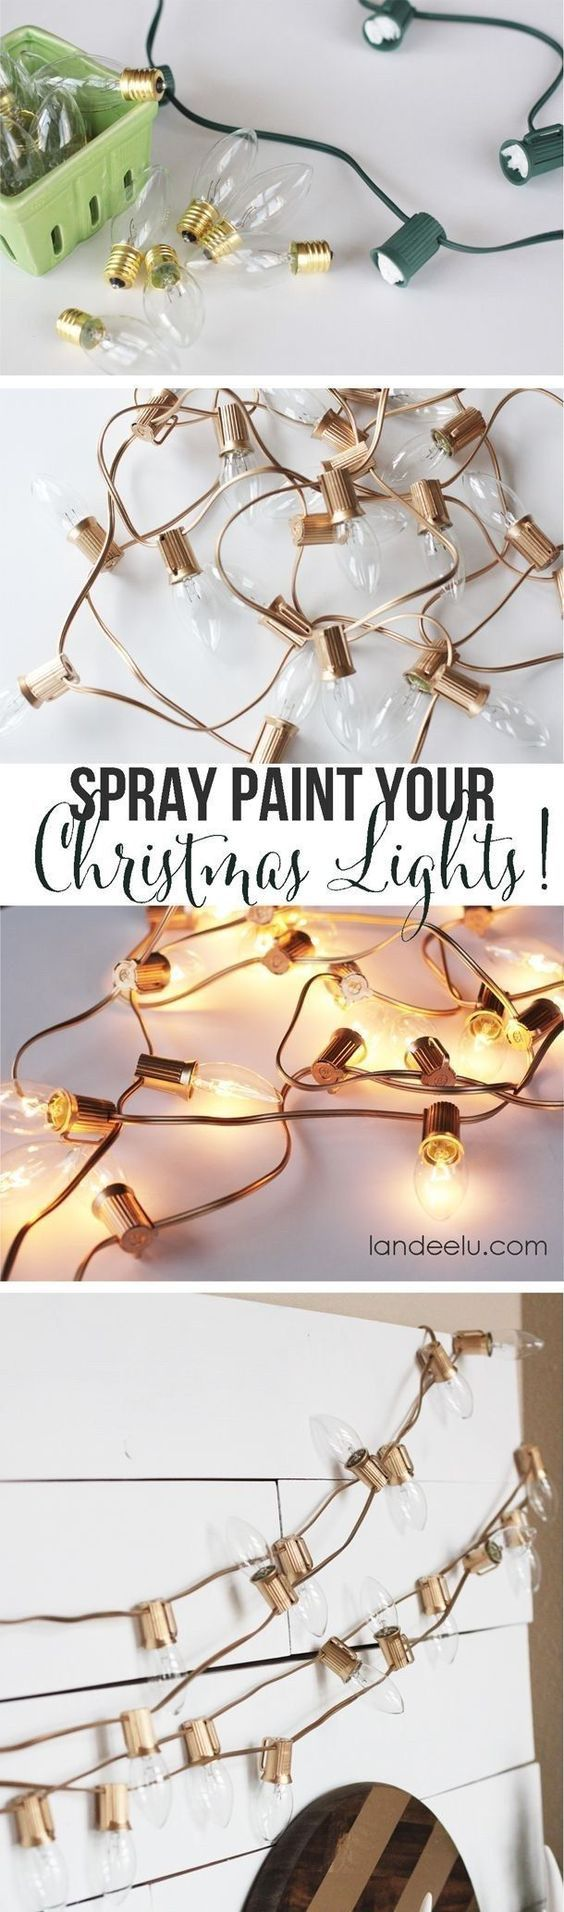 Christmas decoration ideas for apartments - 33 Awesome Diy String Light Ideas Apartment Christmas Decorationsholiday